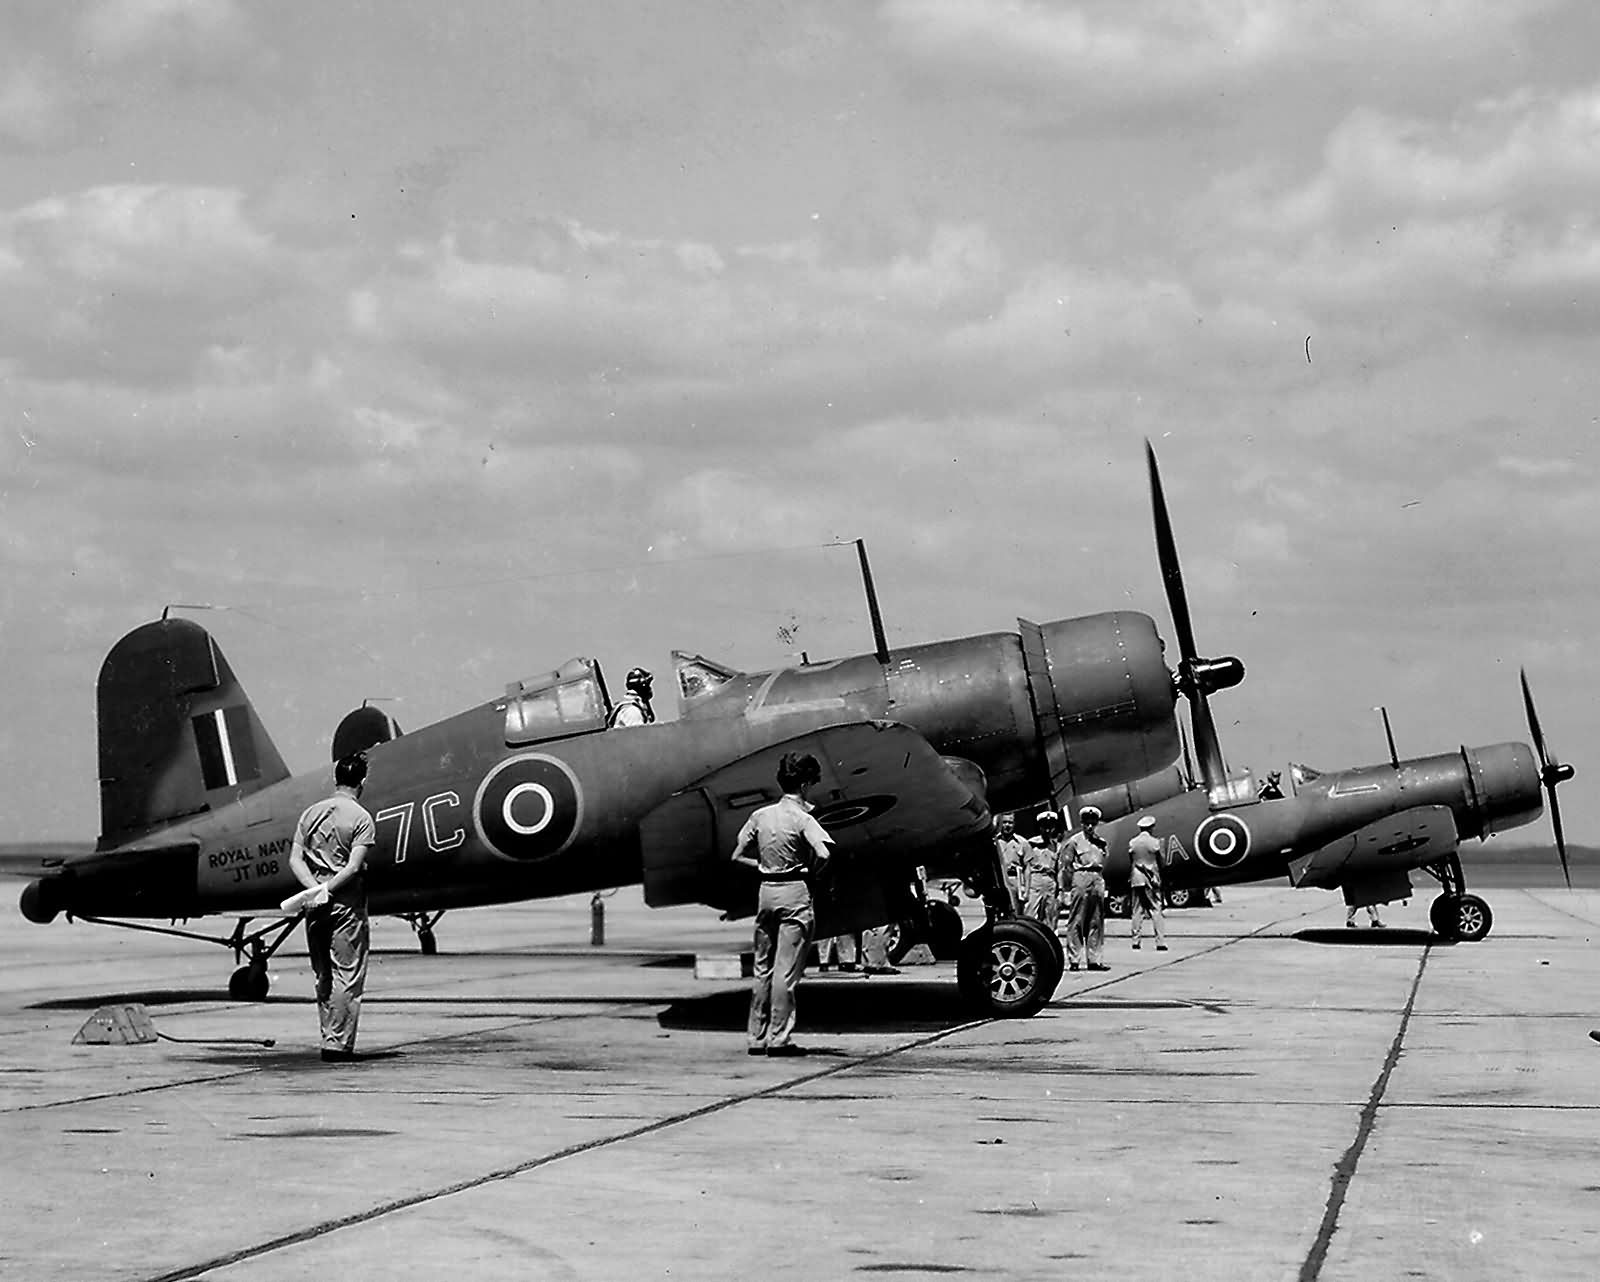 British_Fleet_Air_Arm_Chance_Vough_F4U_Corsair_JT108_7C_1943.jpg